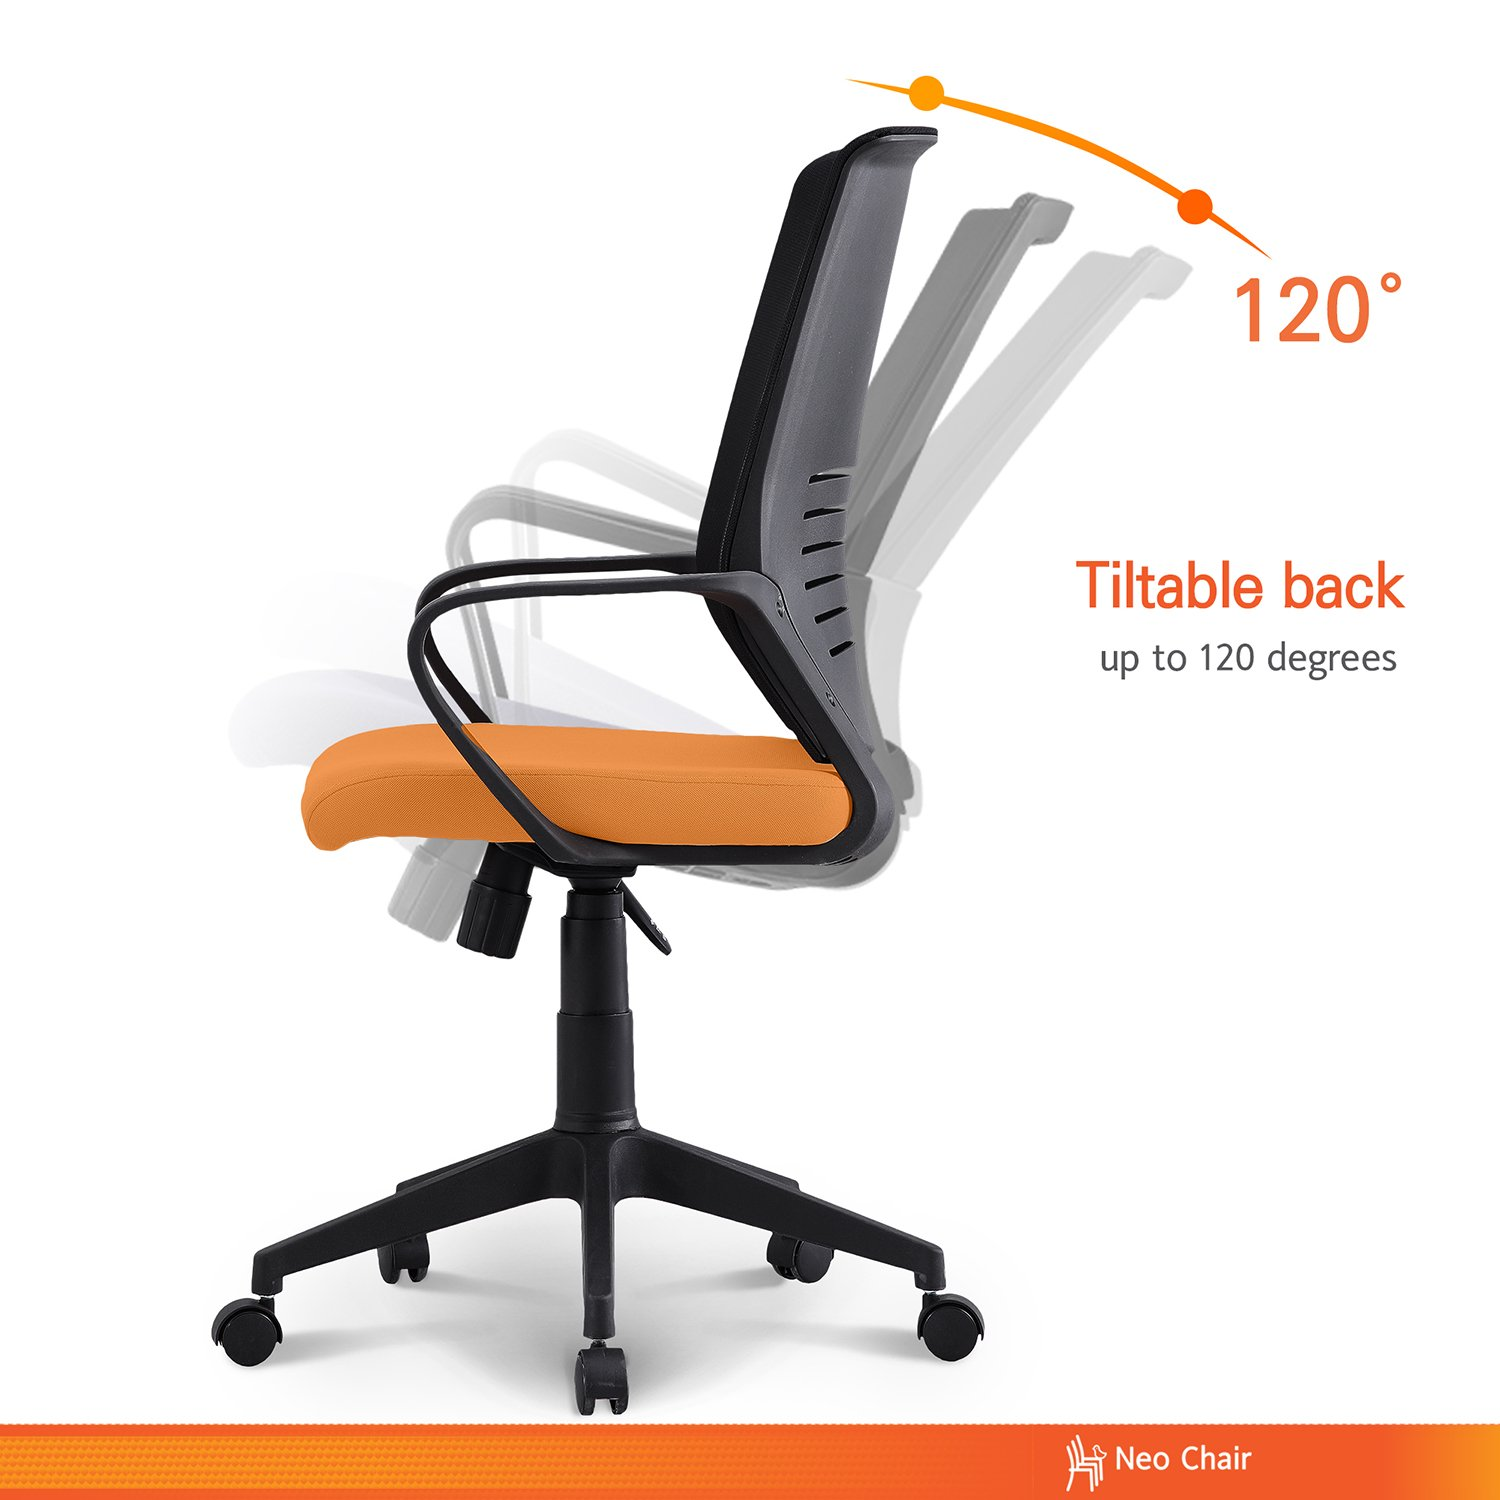 Neo Chair Managerial Office Chair Conference Room Chair Desk Task Computer Mesh Home Chair w Armrest Ergonomic Lumbar Support Swivel Adjustable Tilt Mid Back Wheel, MORCOTE Orange Black